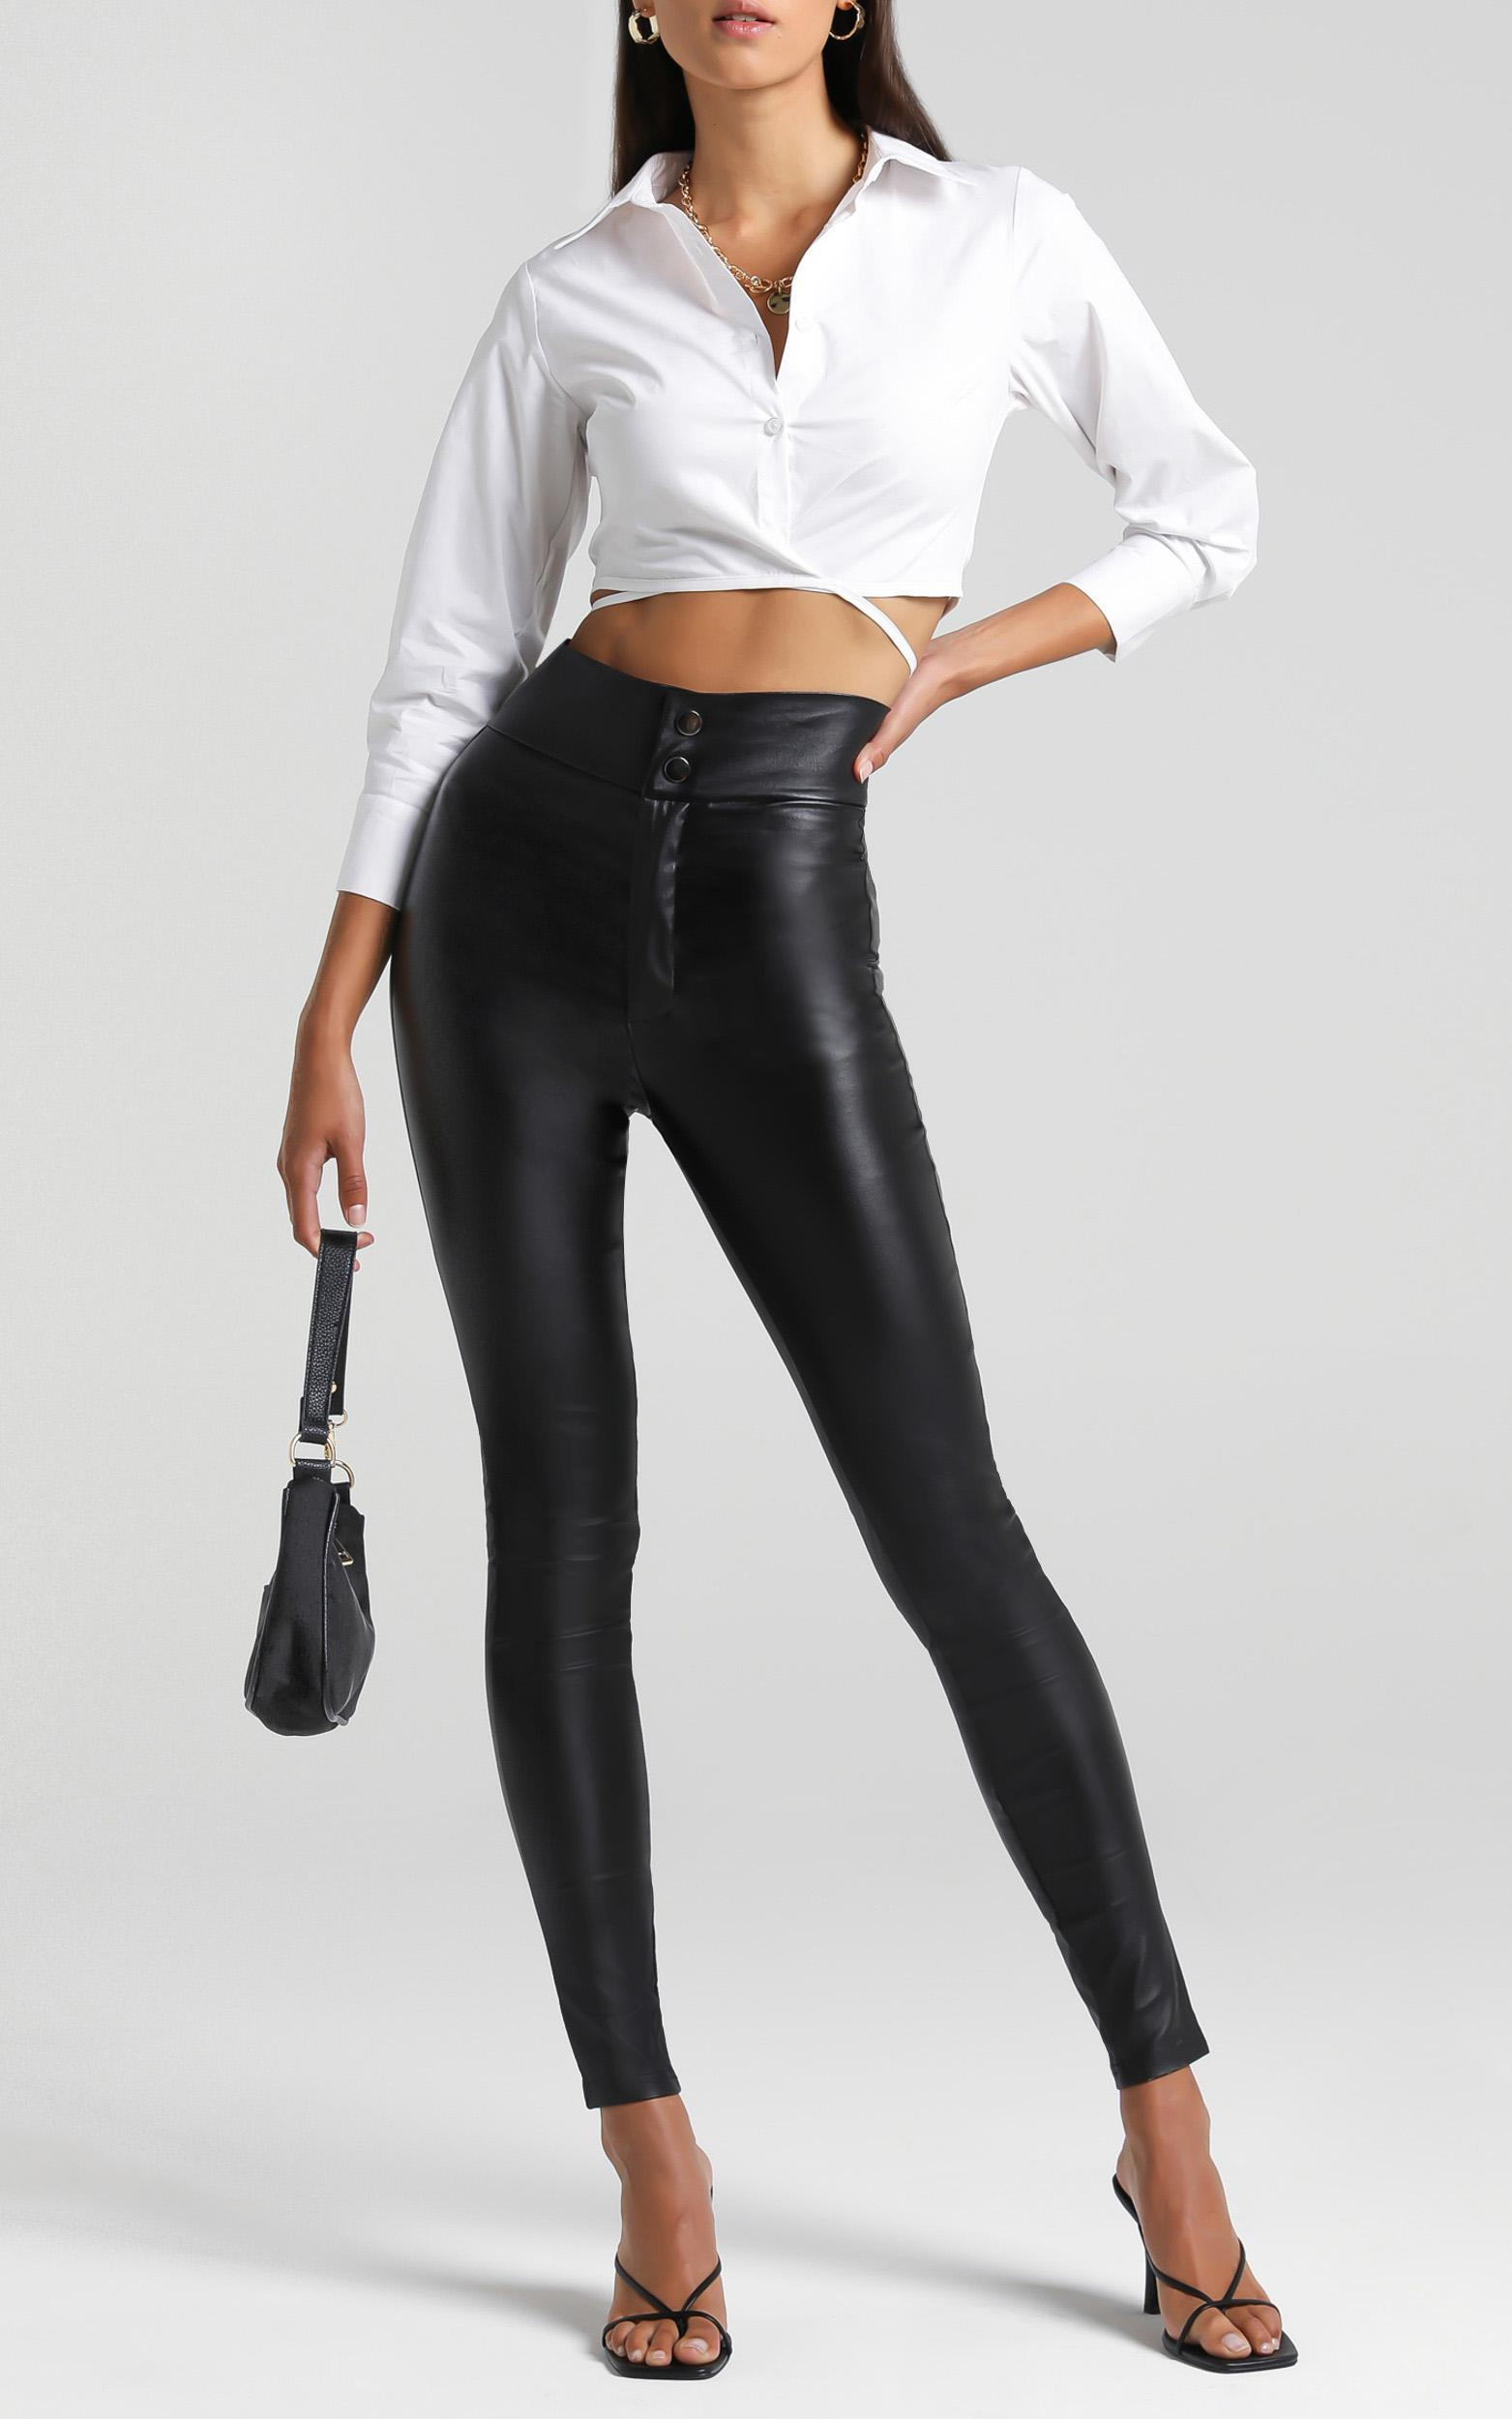 Whatever We Want Pants In black leatherette - 20 (XXXXL), Black, hi-res image number null